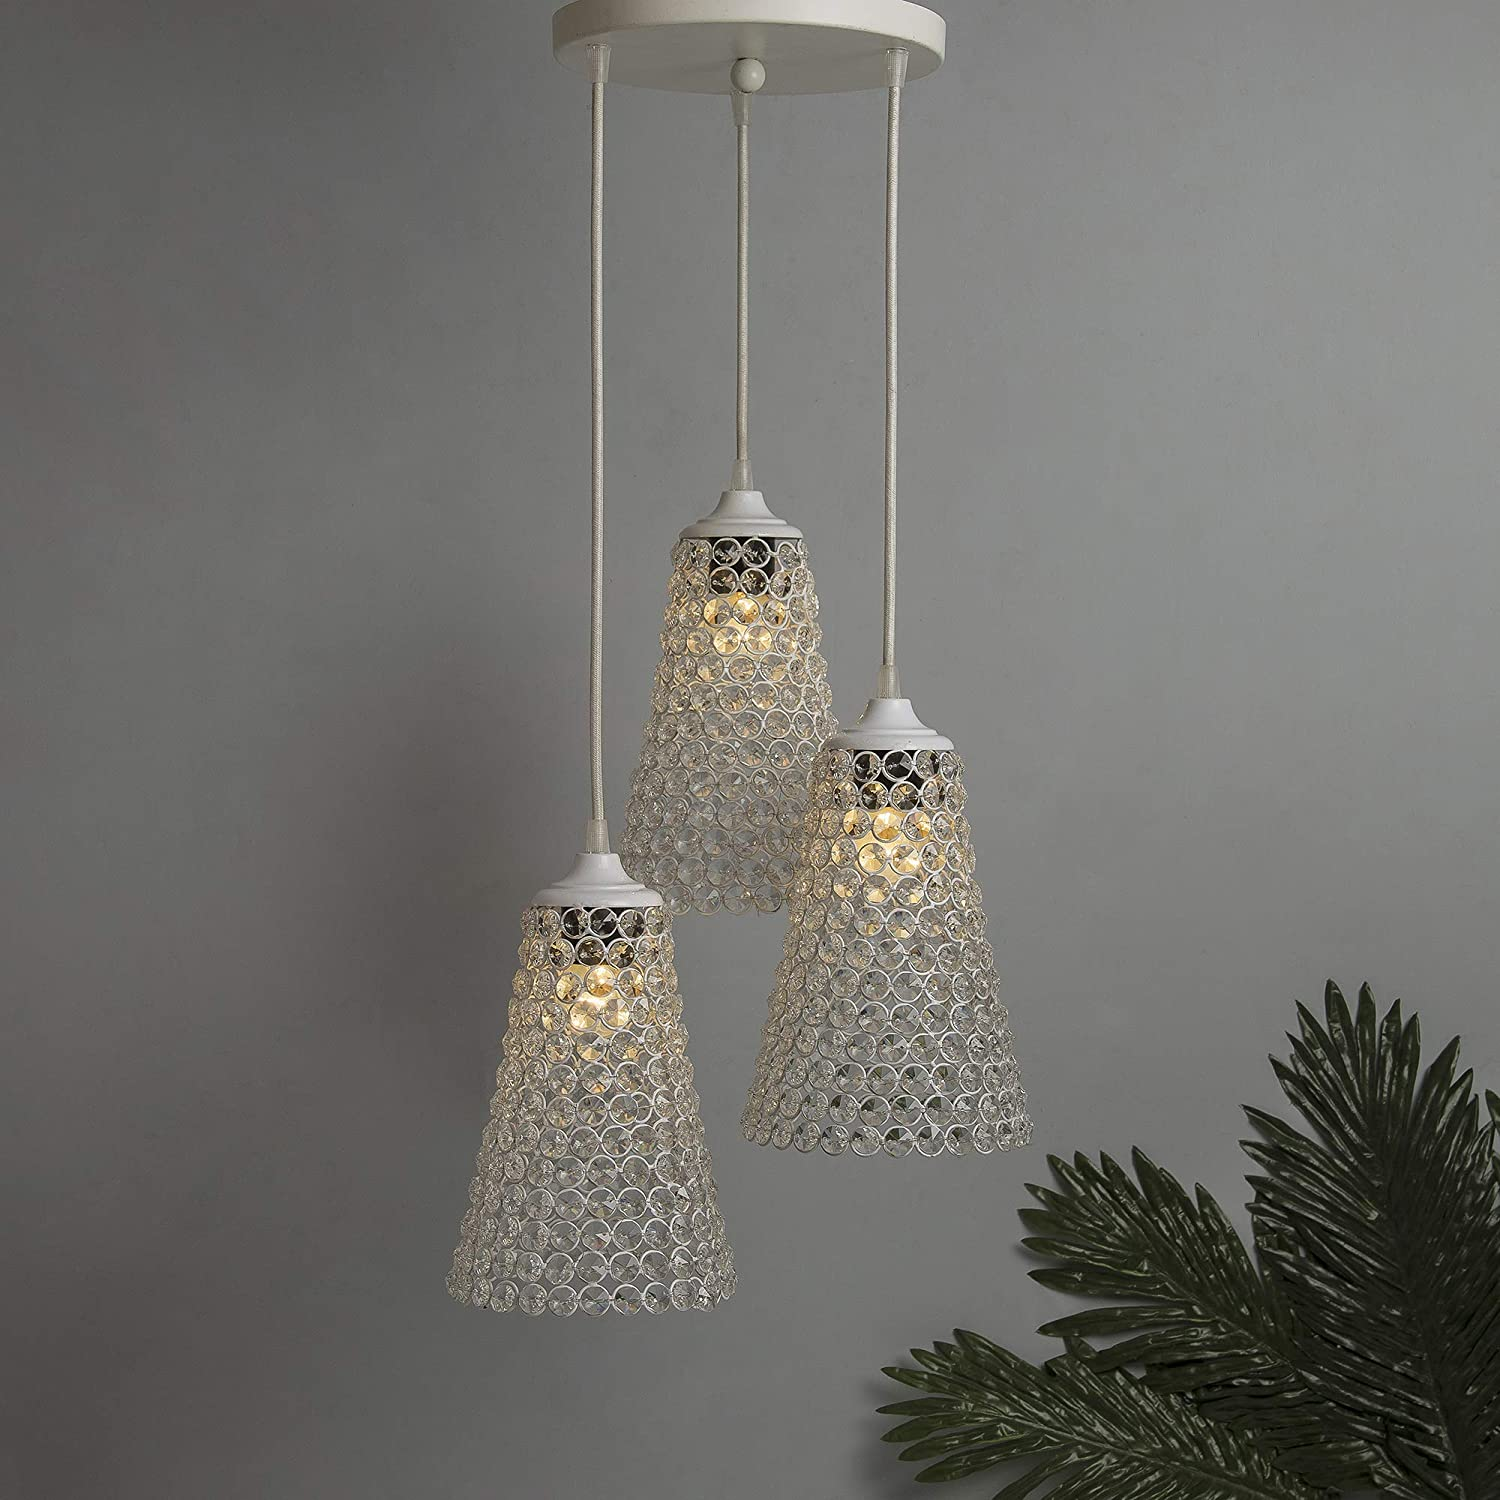 Crystal Cone Hanging Pendant Light with Braided Cord hanging lights for Indian homes